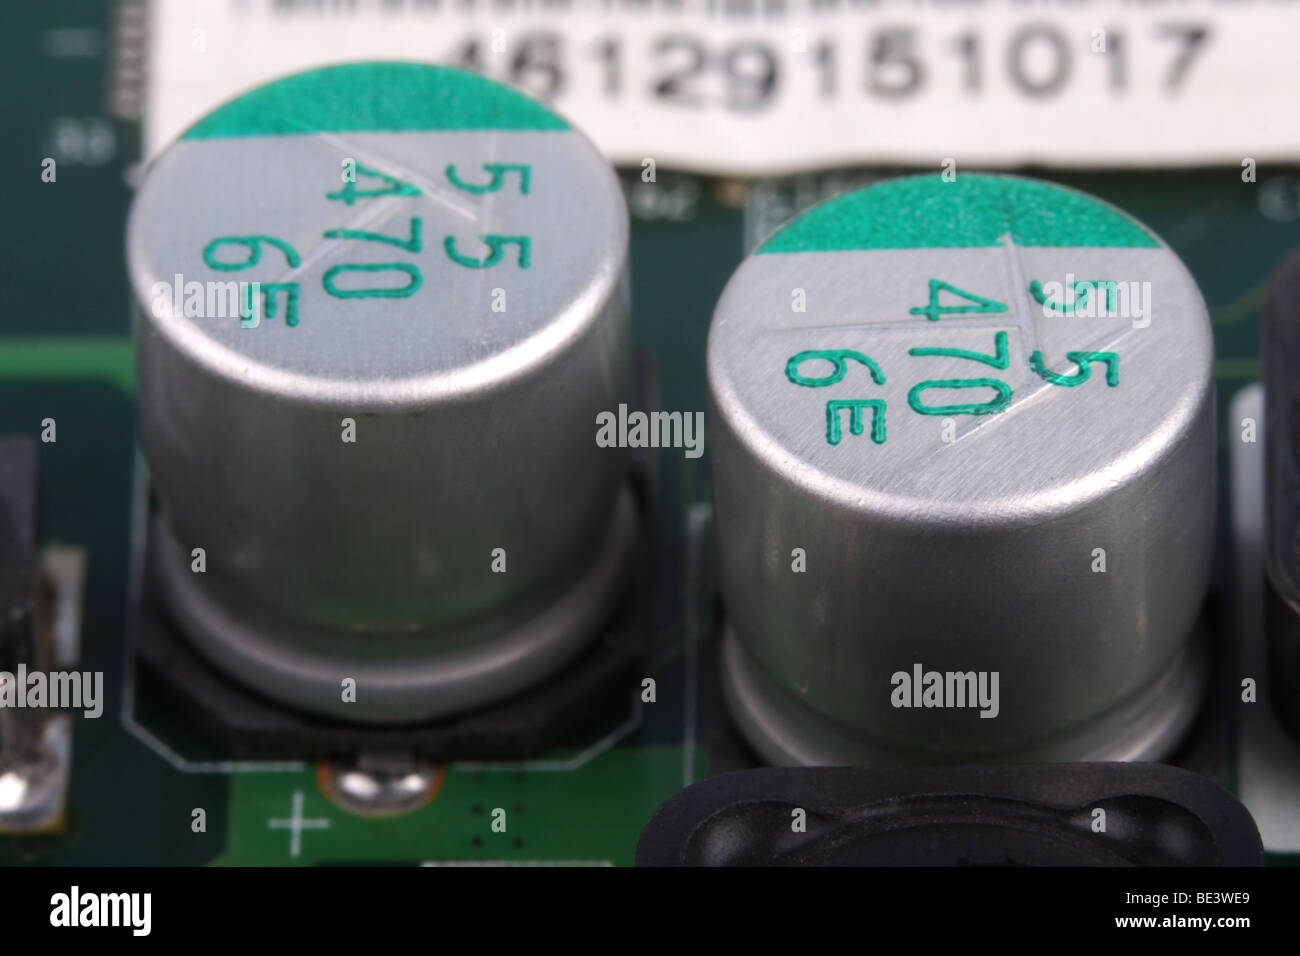 Electronic components on a wiring board shown in a very close up macro. - Stock Image